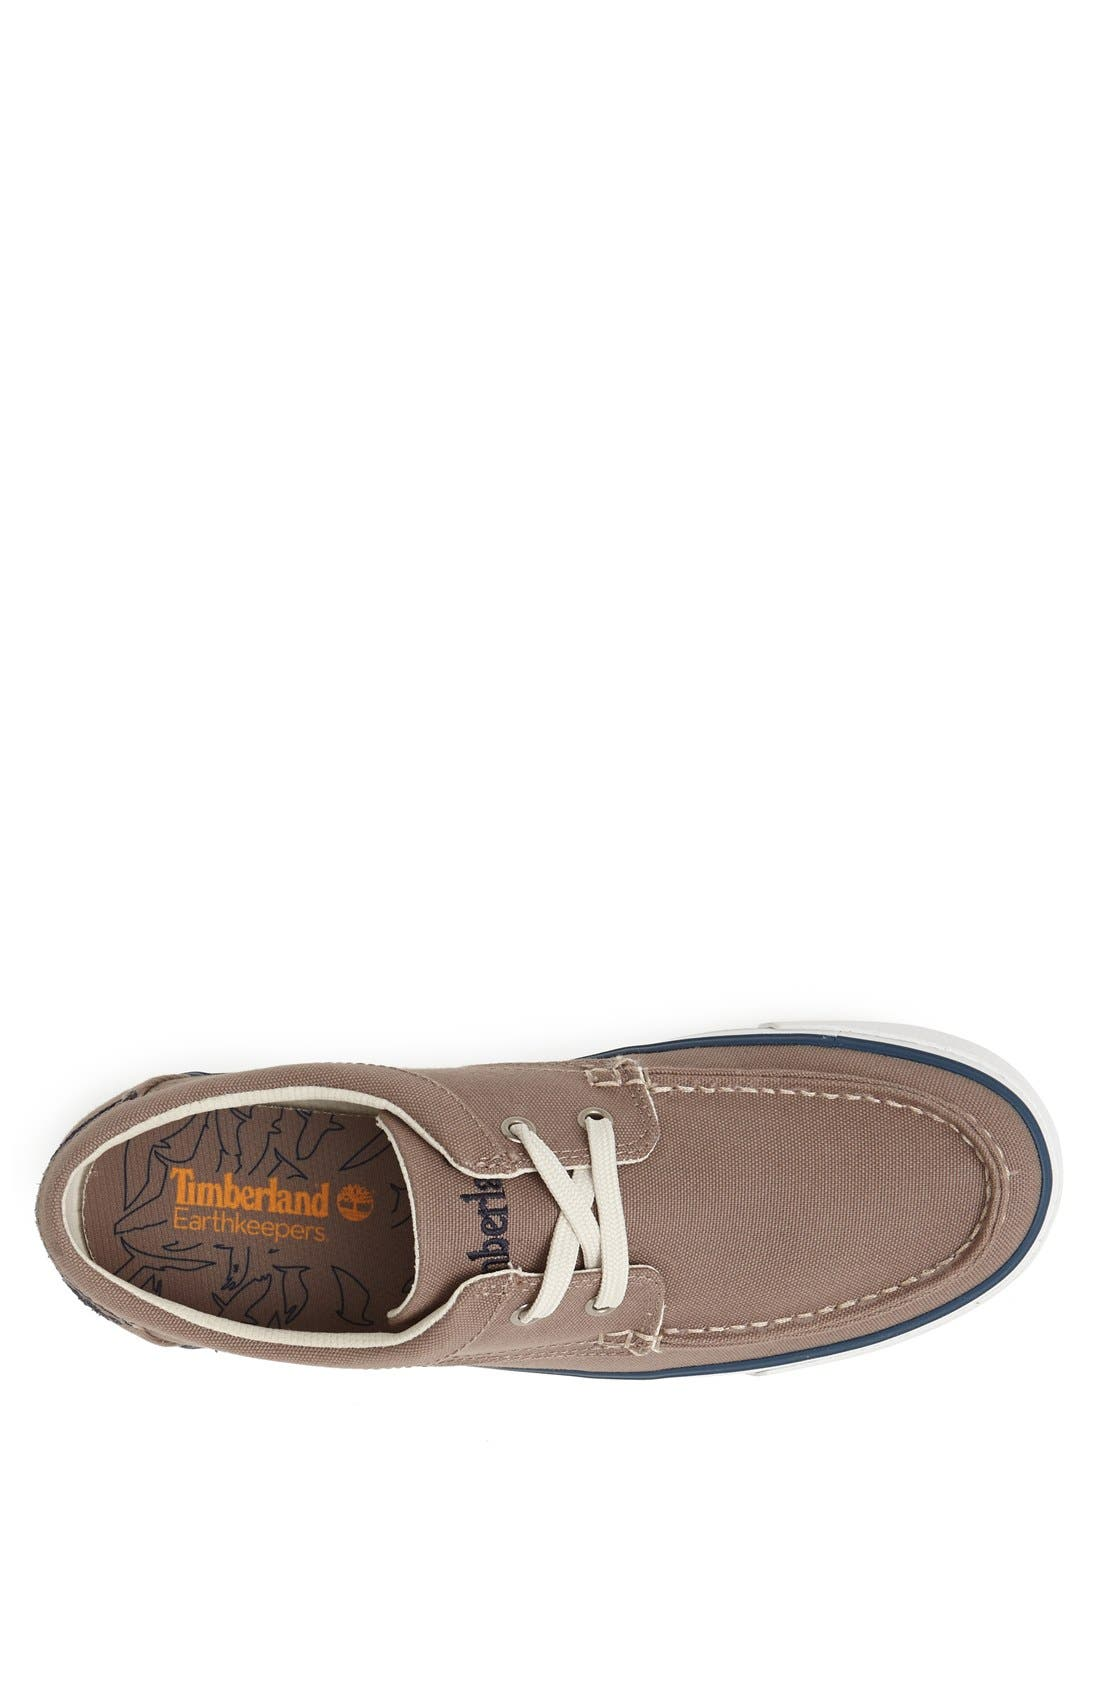 Alternate Image 3  - Timberland Earthkeepers® 'Hookset' Boat Shoe (Men)